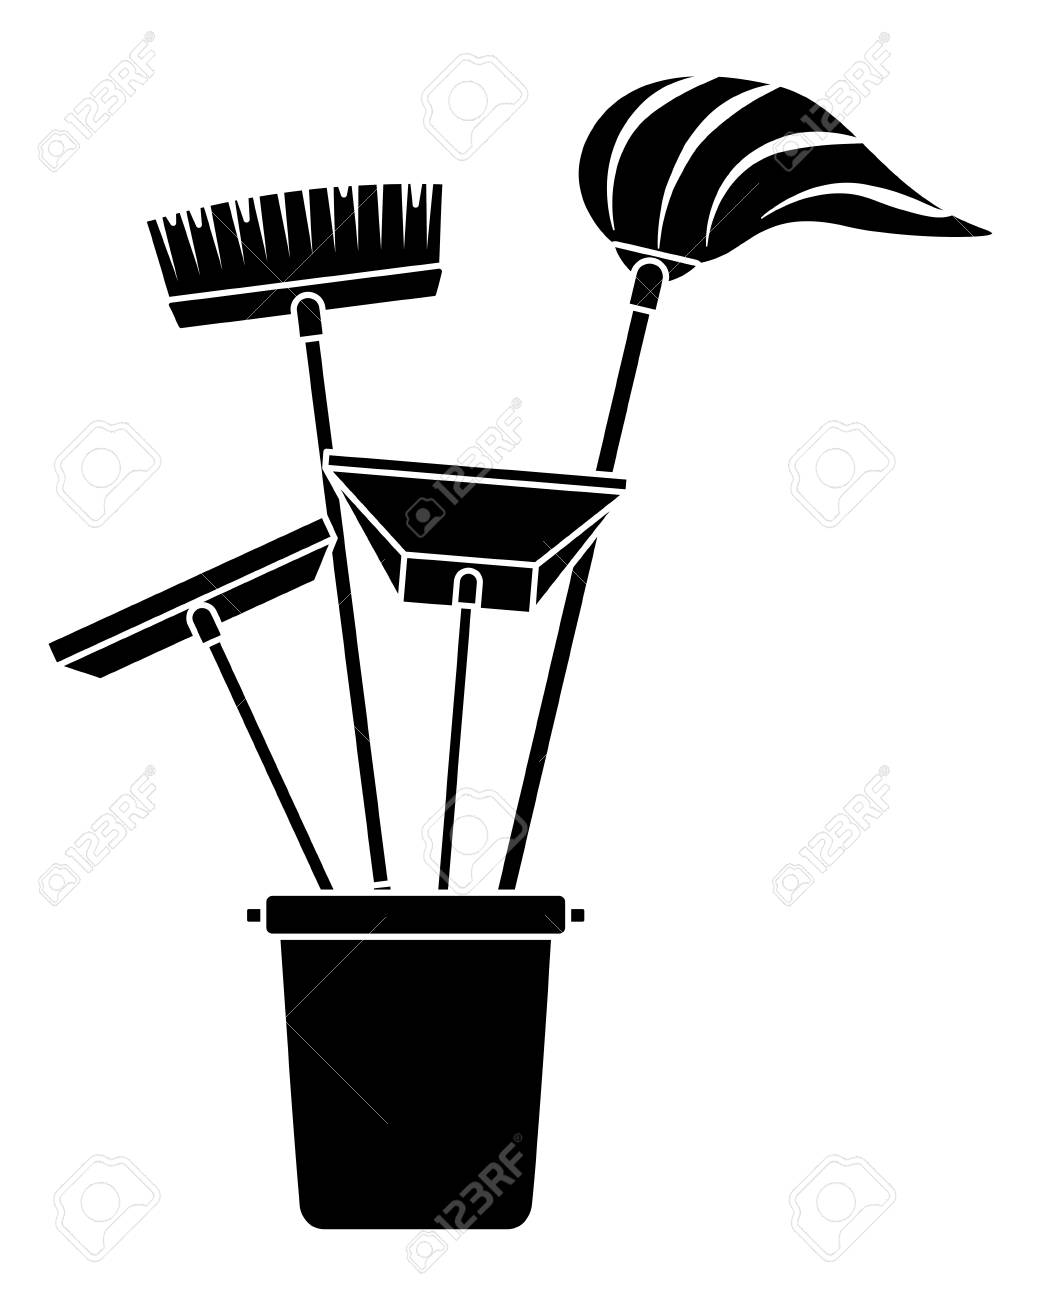 Various cleaning objects in a plastic bucket for janitorial cleaning...